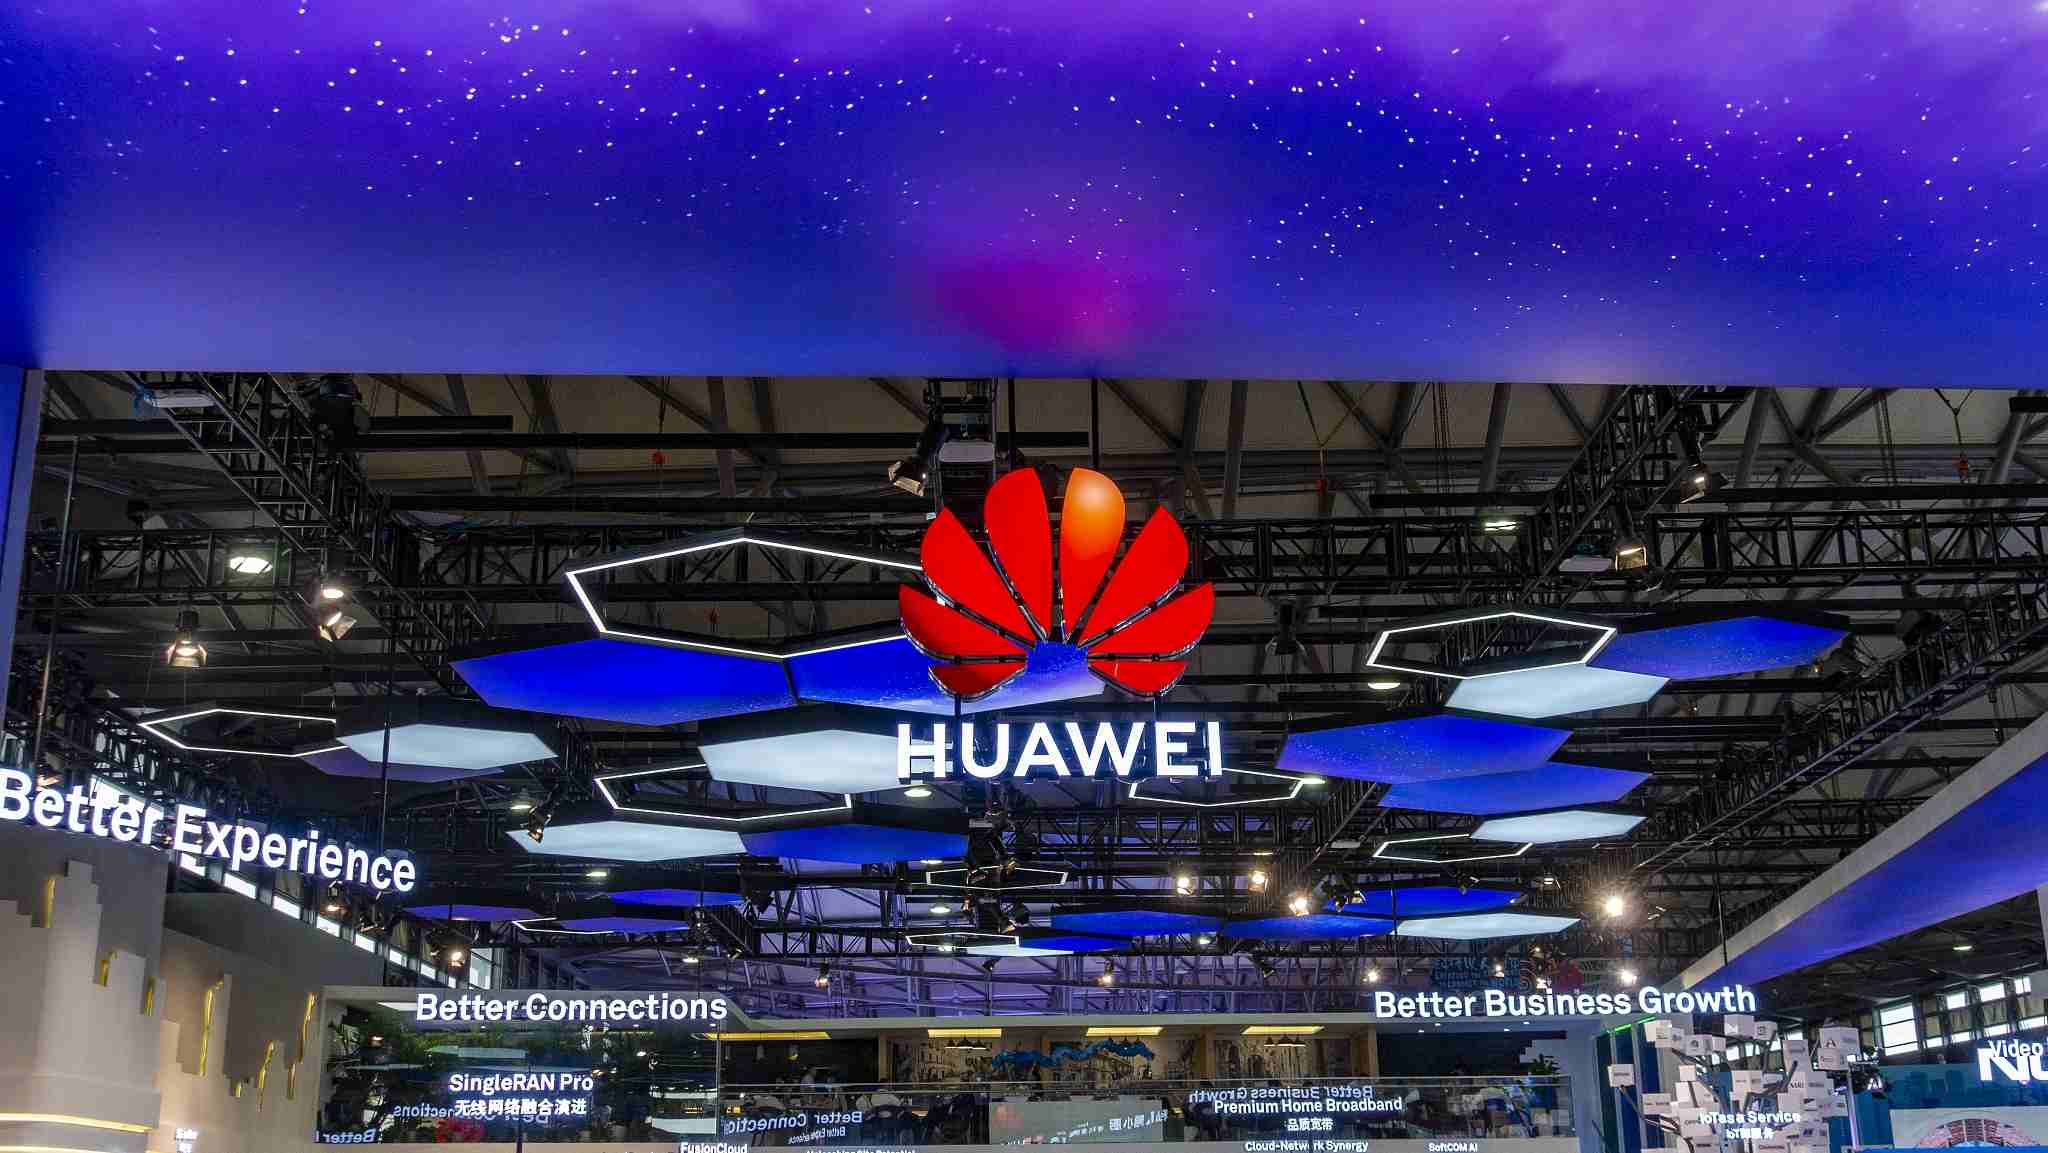 Huawei tie-up aims to make Portugal a European leader in 5G